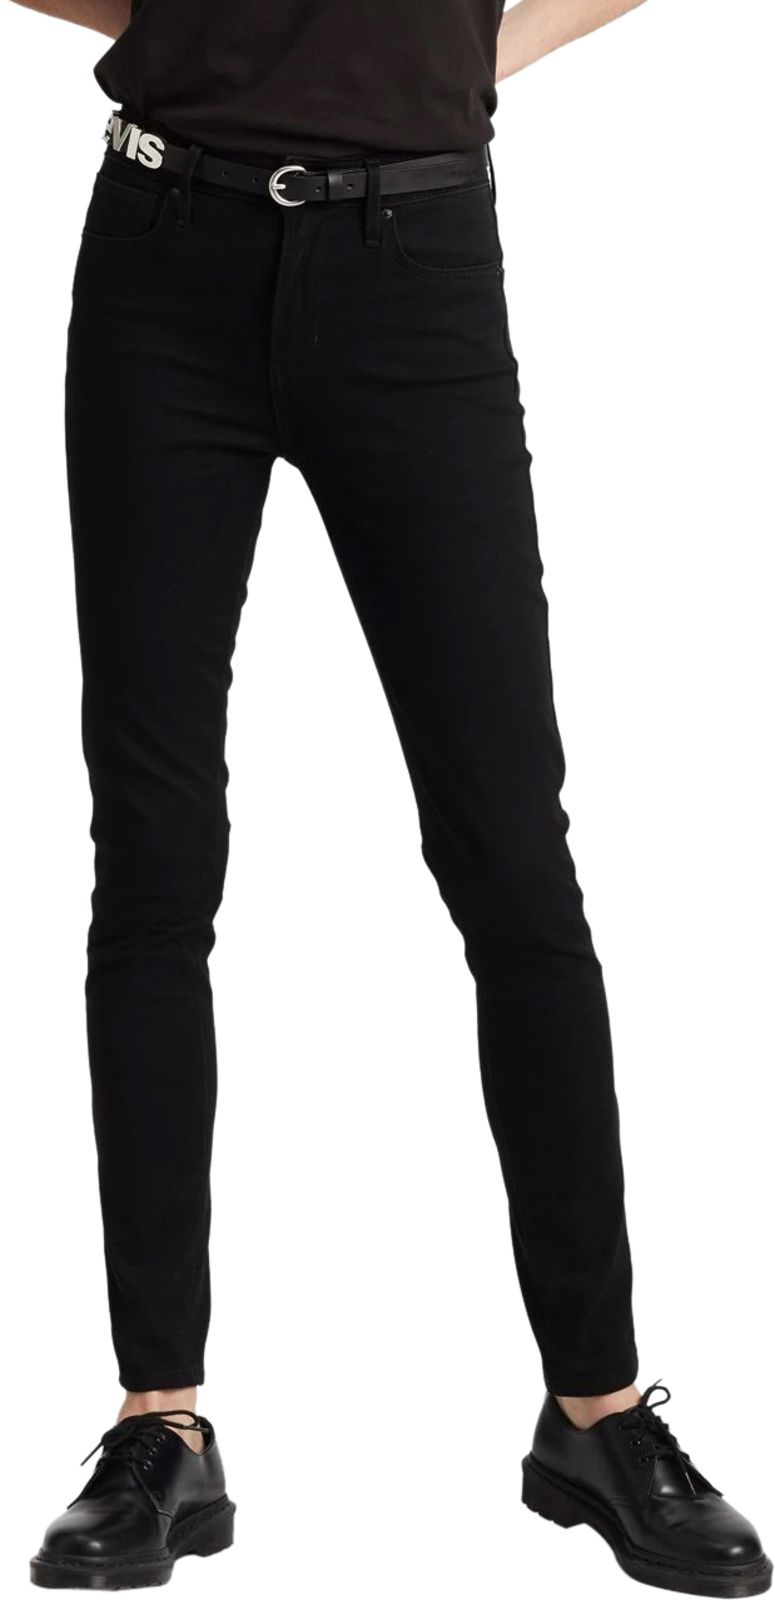 Levi's 721 High Rise Skinny Denim Jeans Black